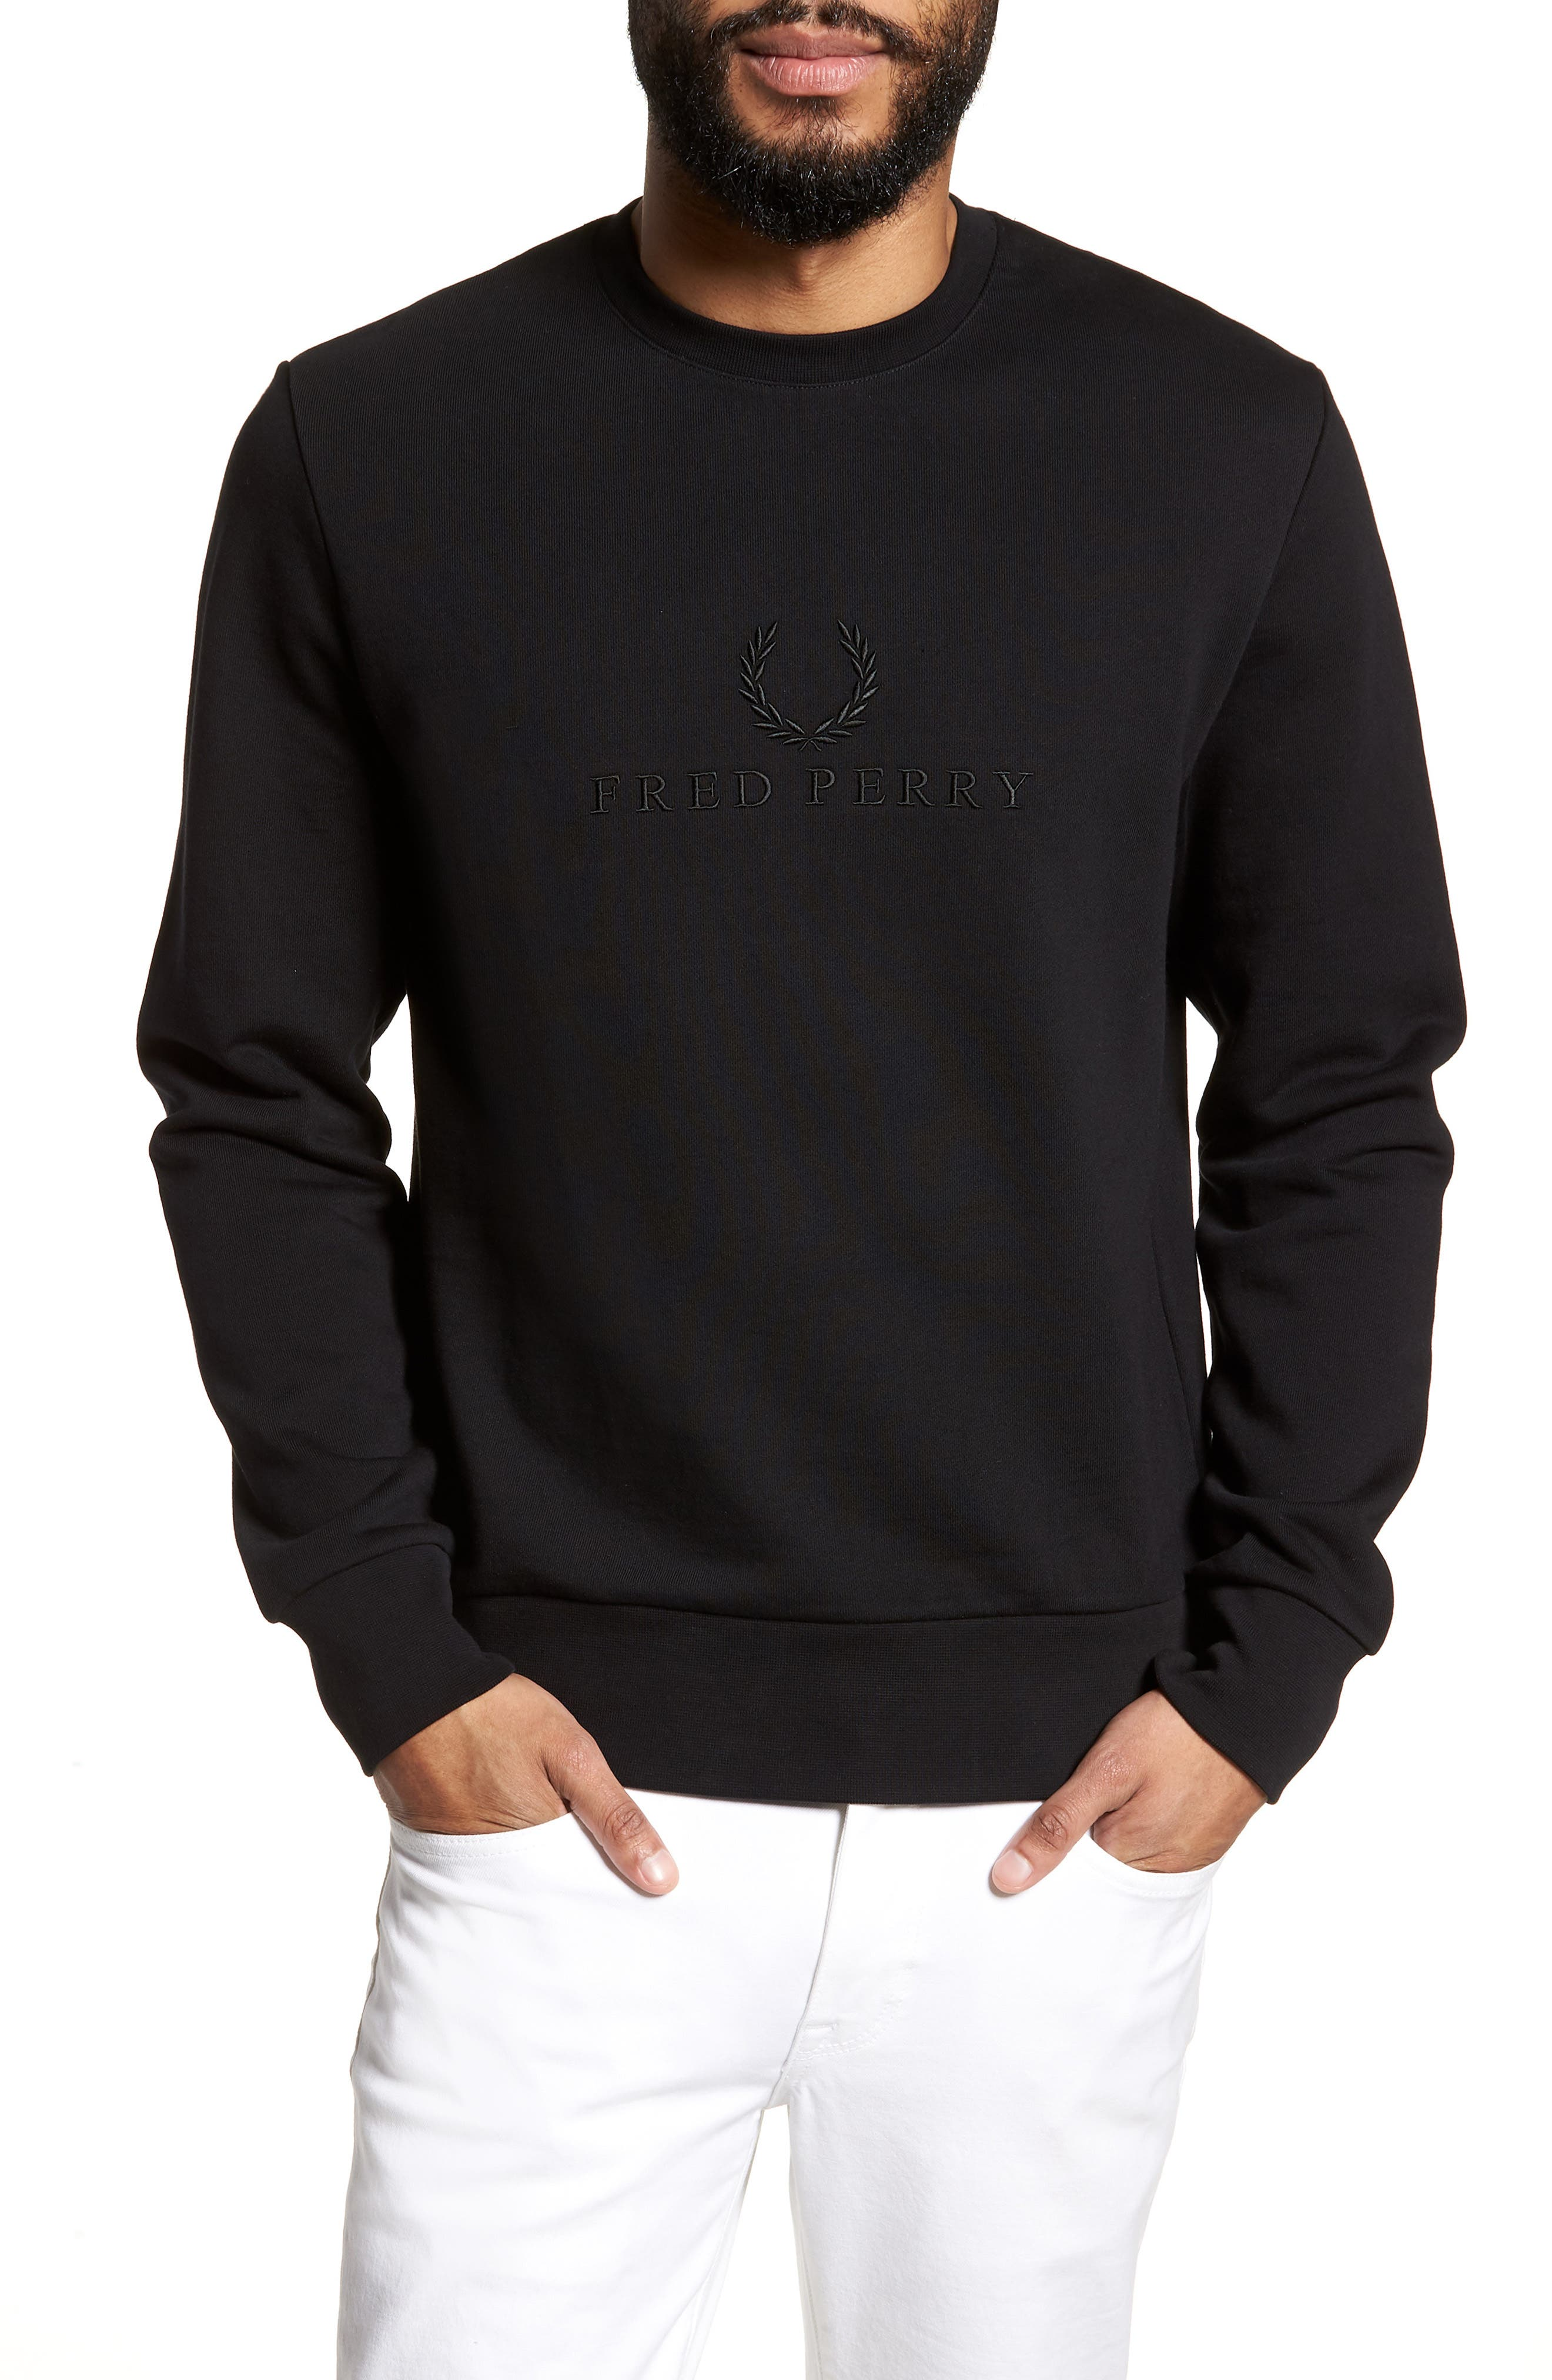 Main Image - Fred Perry Embroidered Sweatshirt